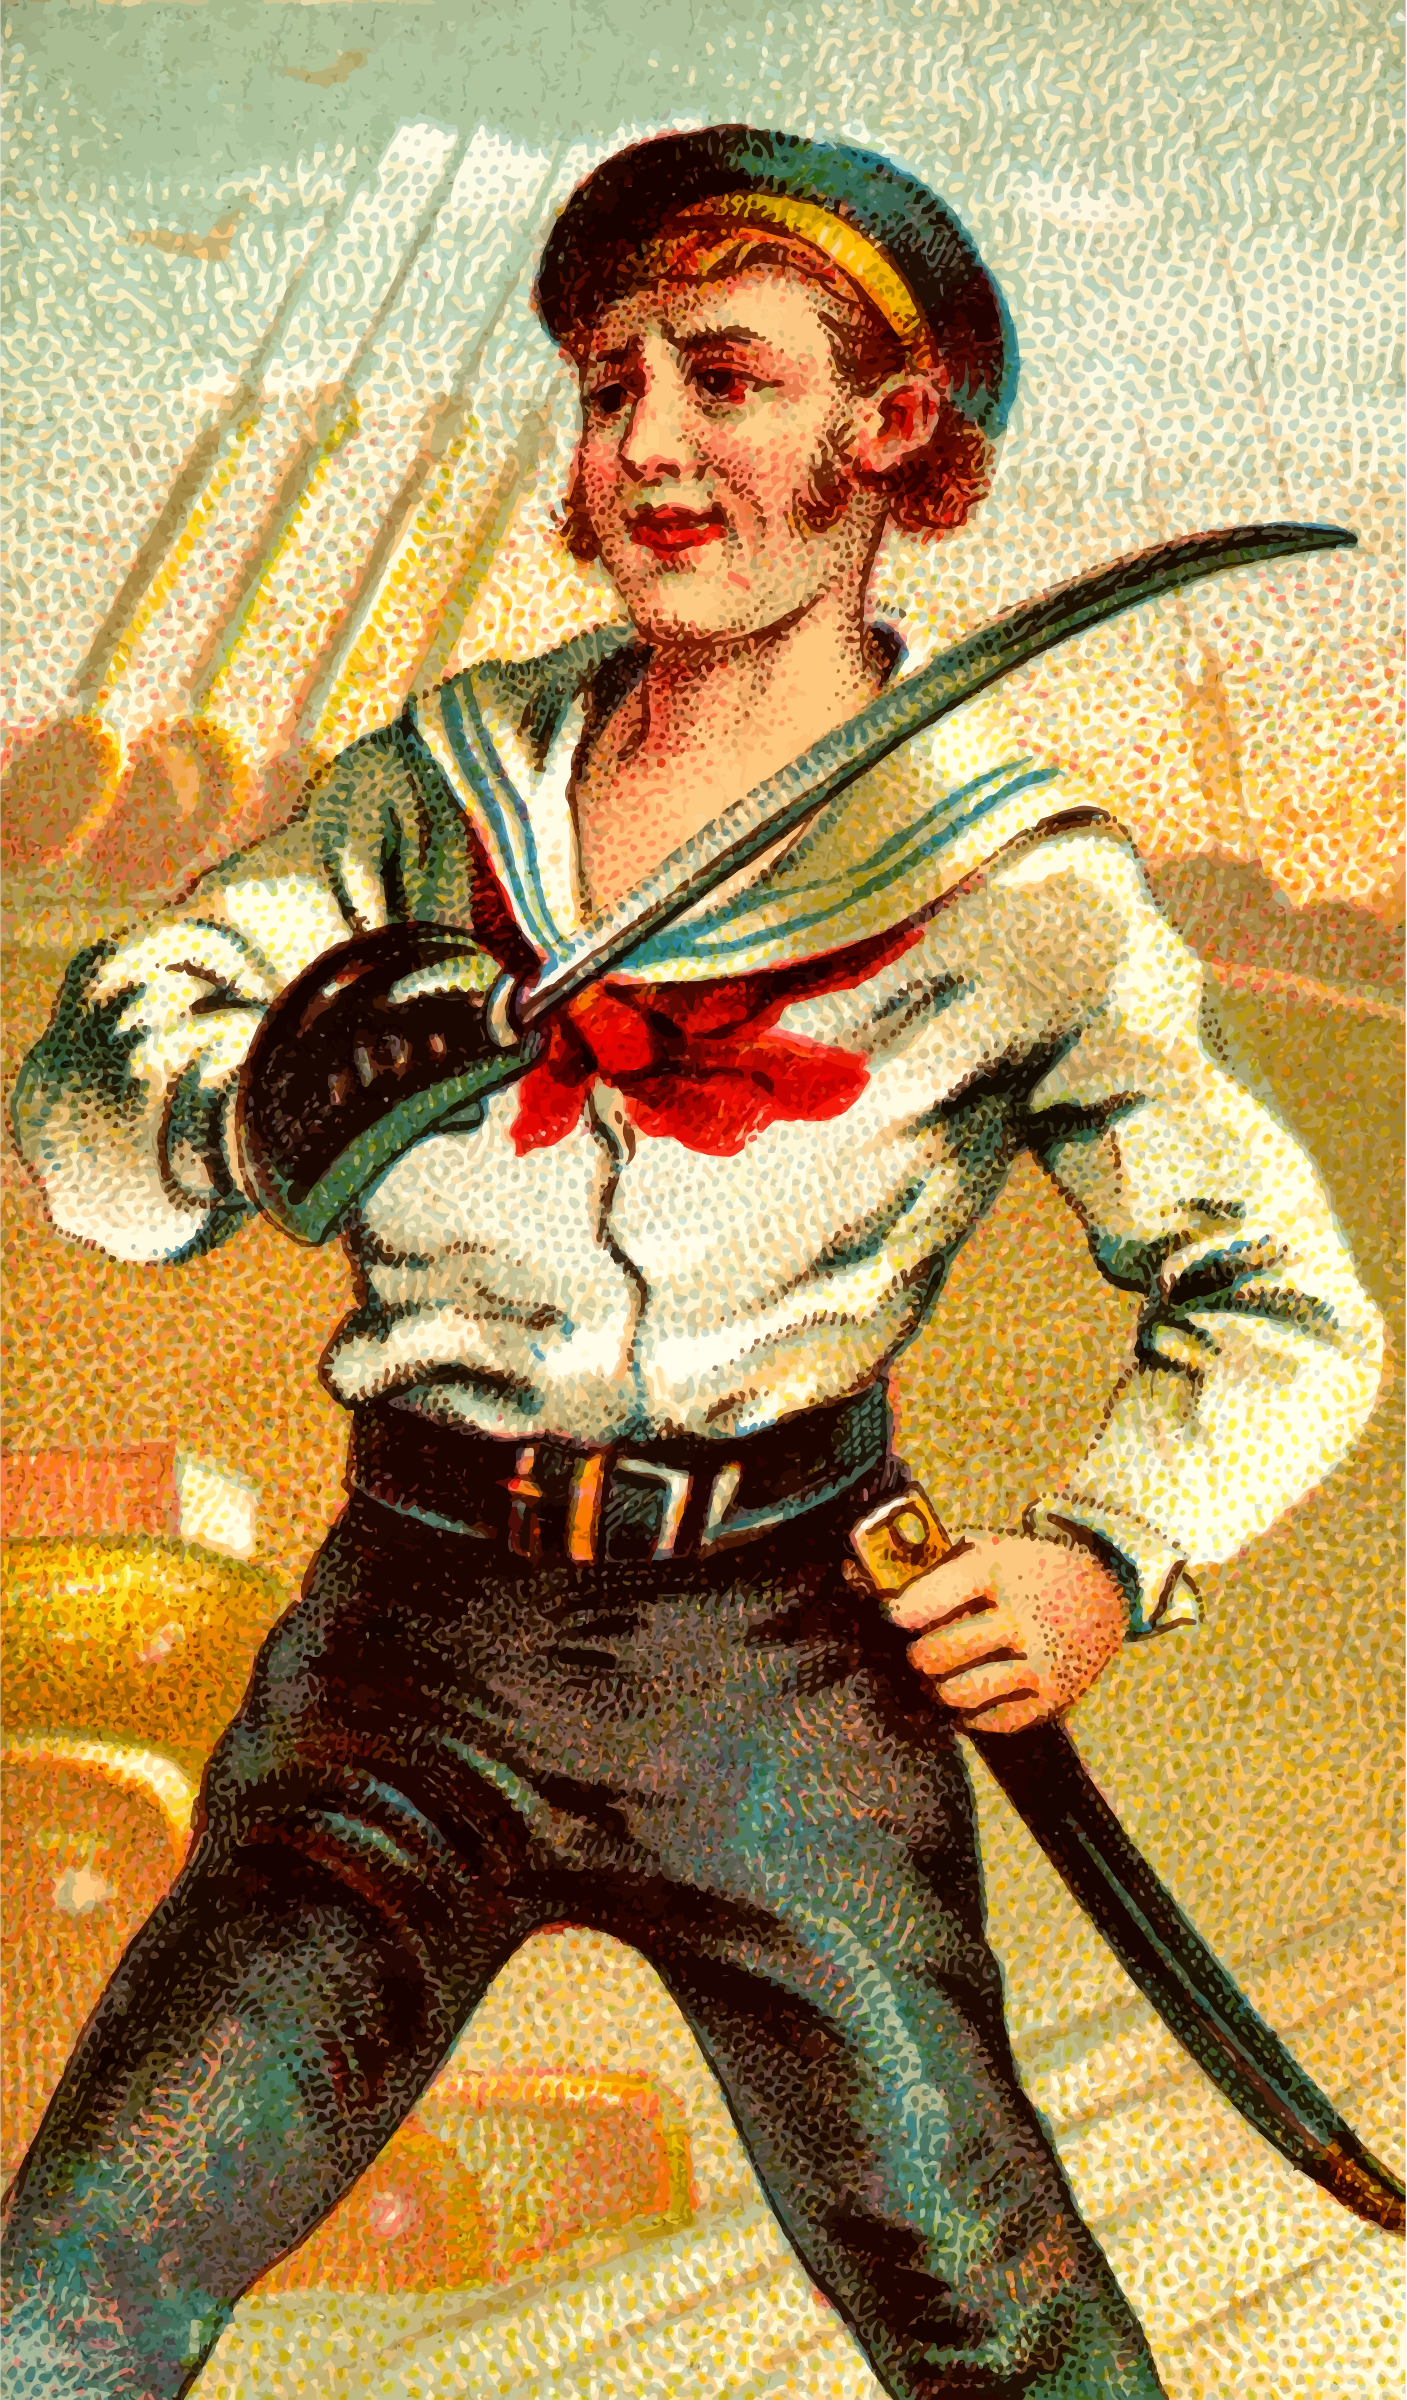 Cigarette card - Cutlass by Firkin